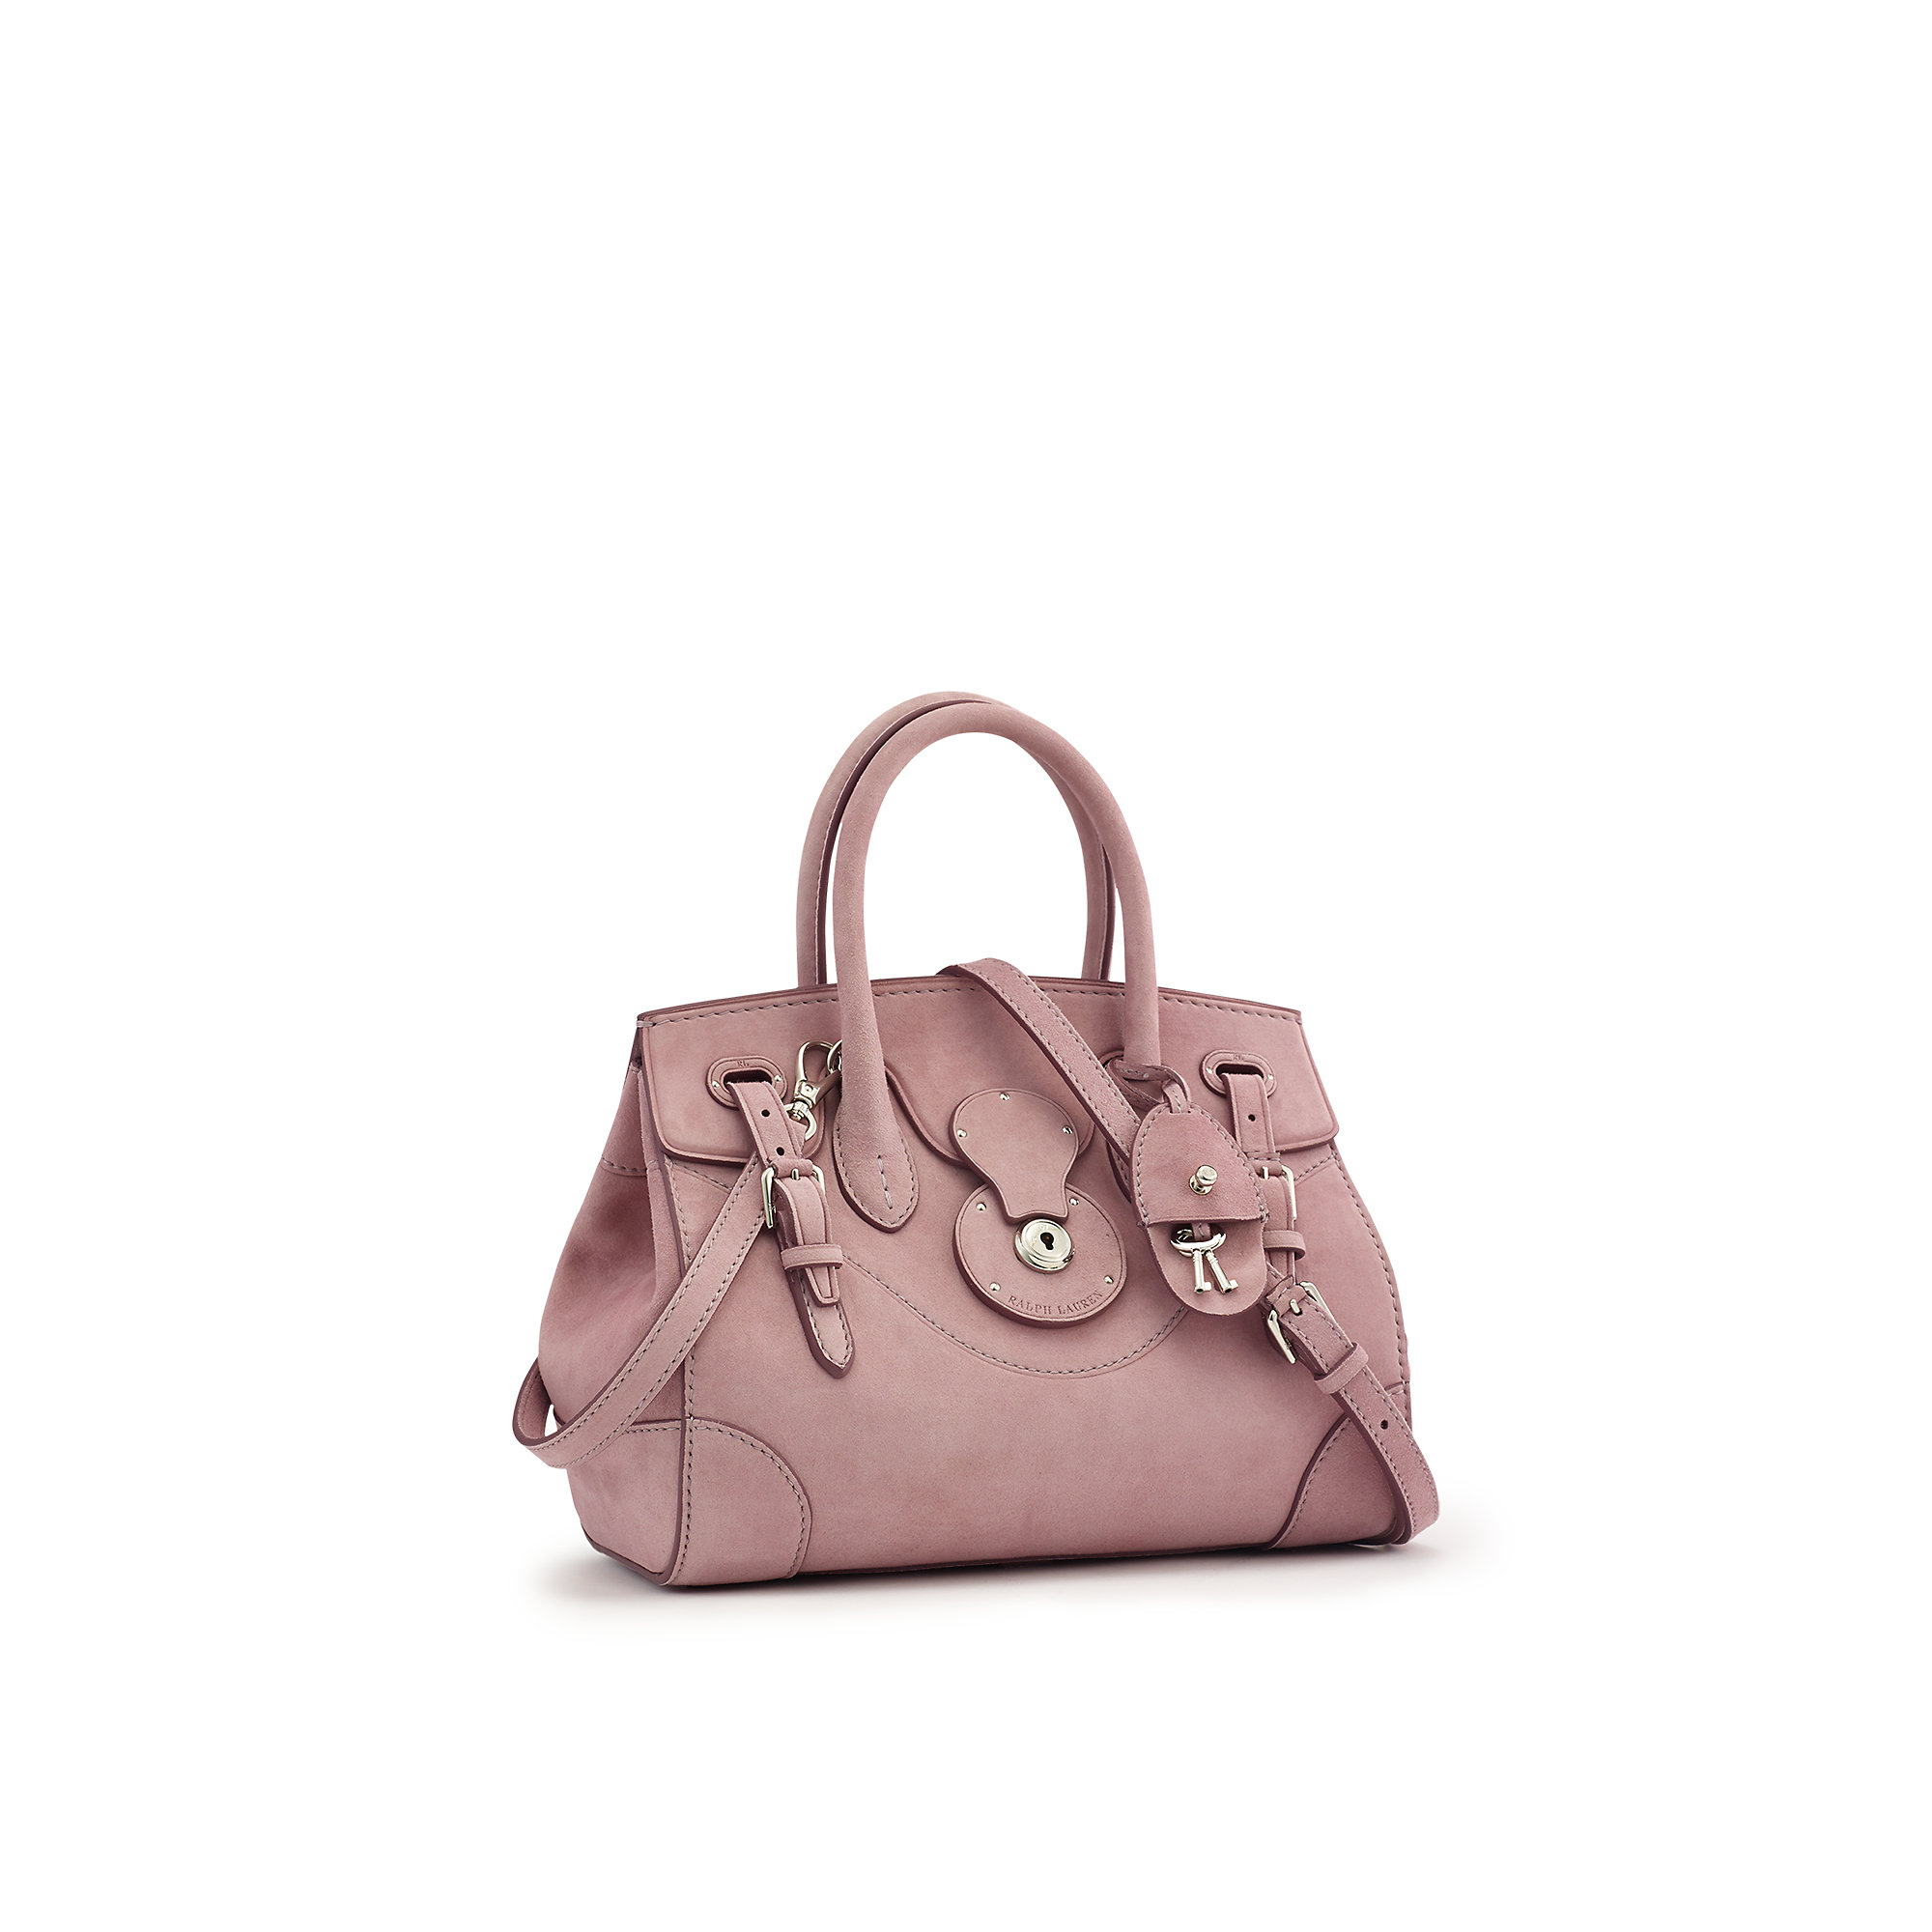 Lyst - Pink Pony Suede Soft Ricky 27 in Purple 2f3d7de1cd0c3